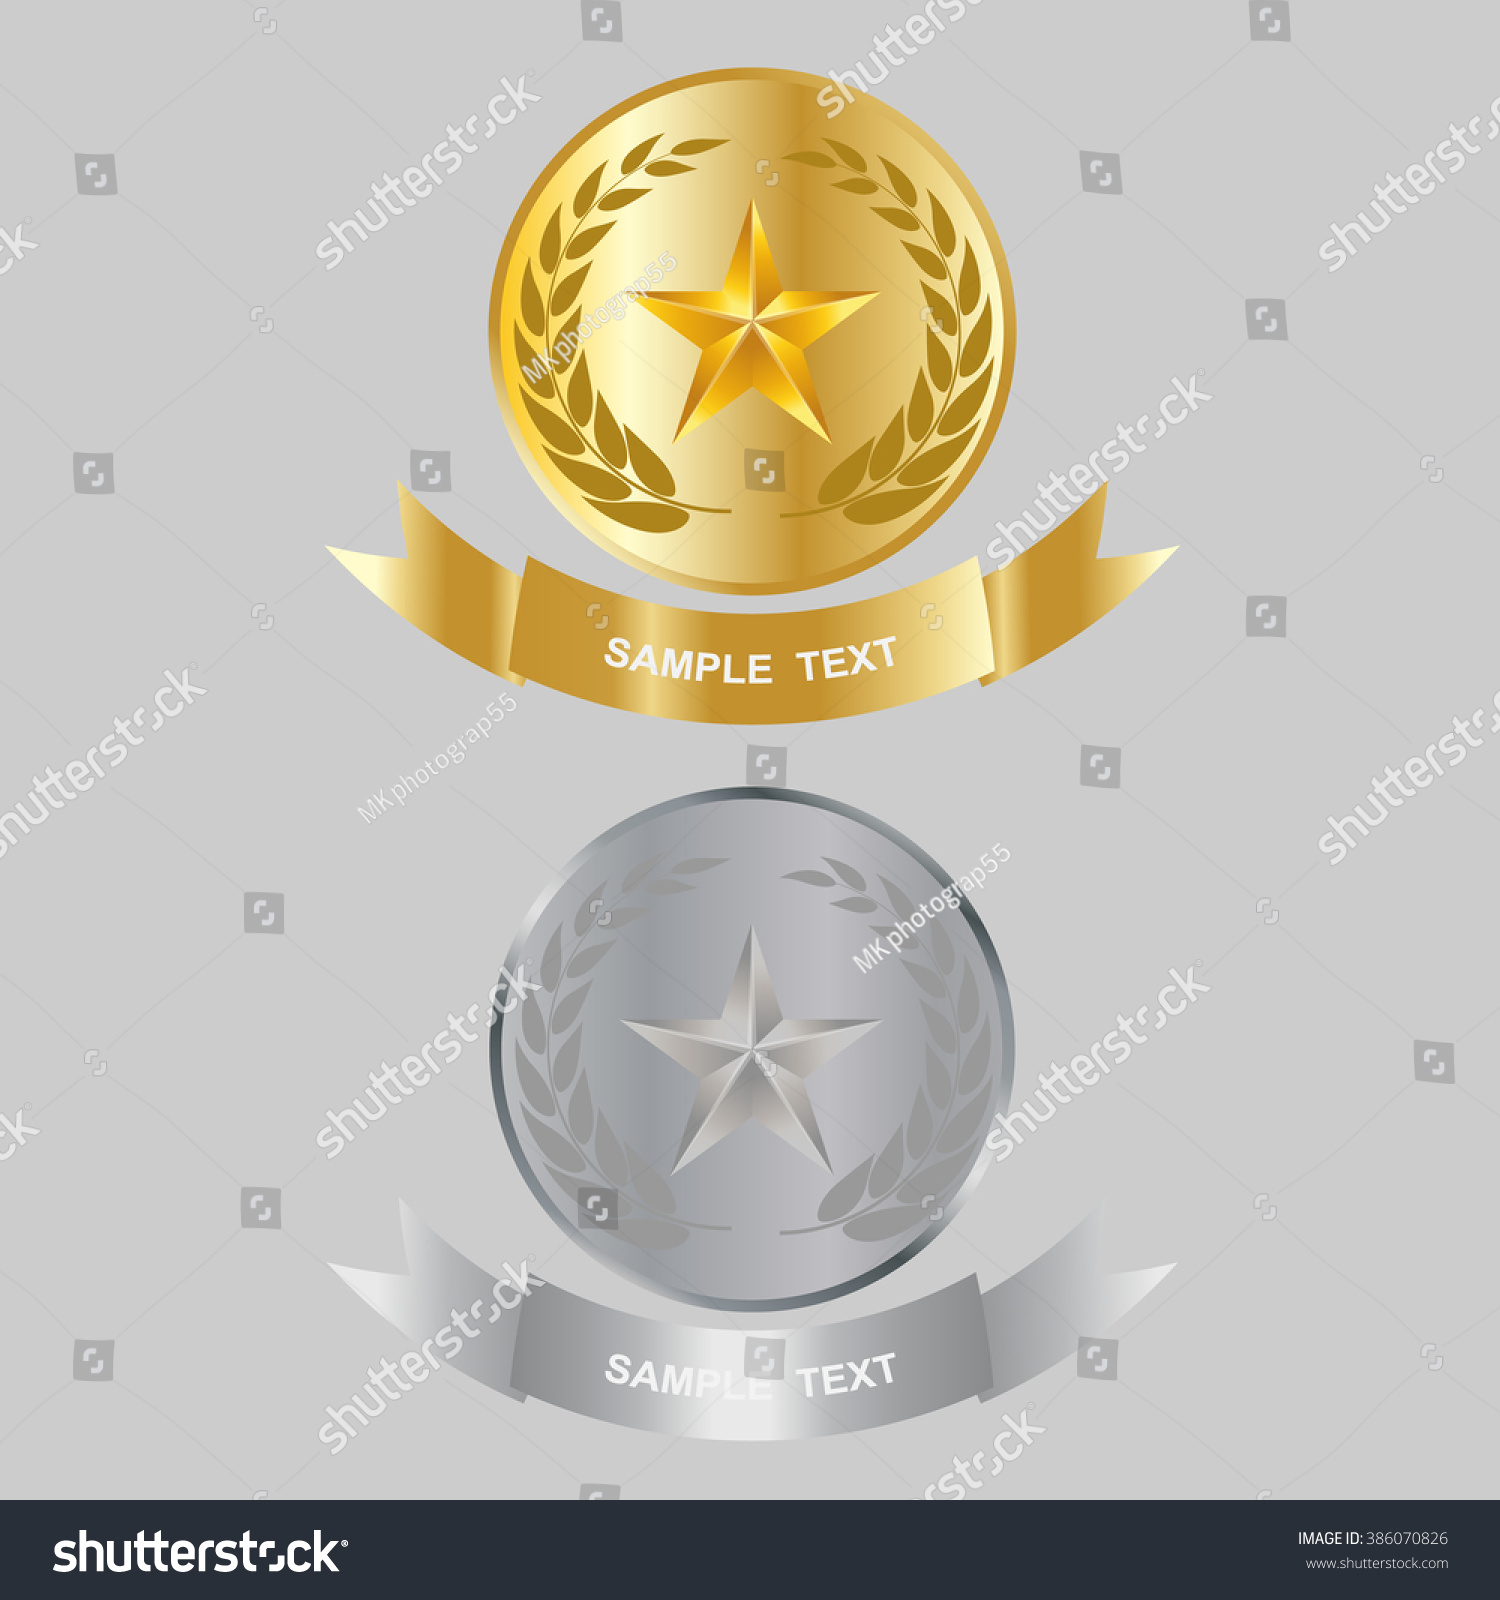 Magnificent Gold Star Award Template Collection - Examples ...